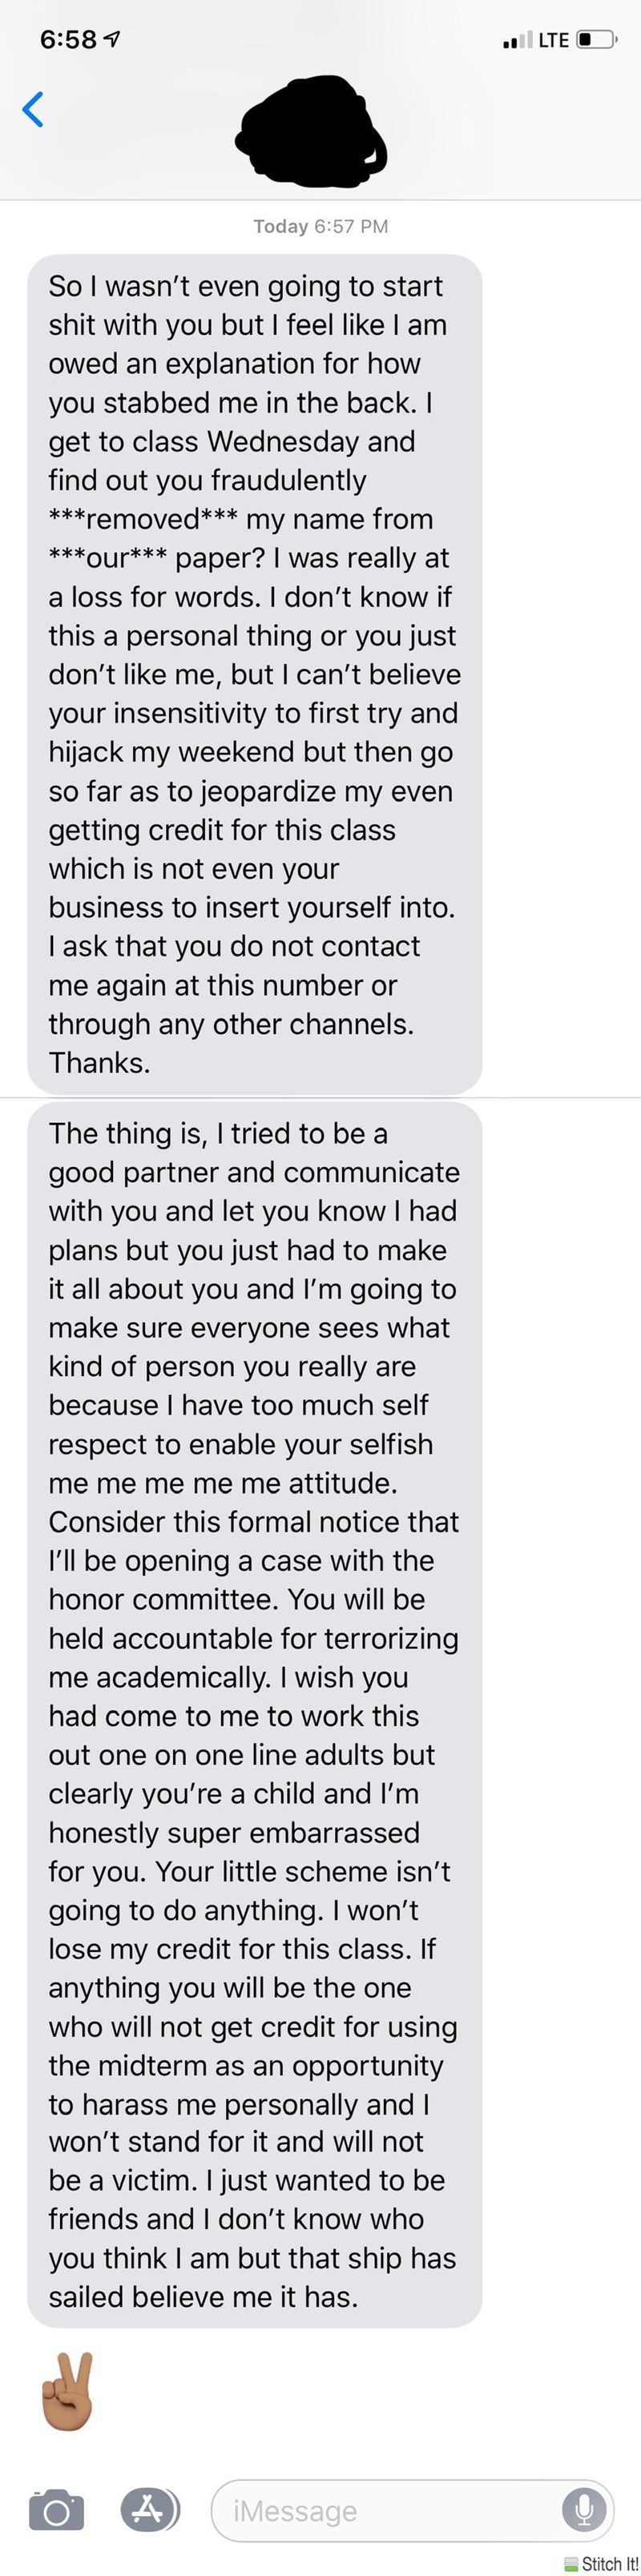 text message about partners in a school project that one ended up screwing the other